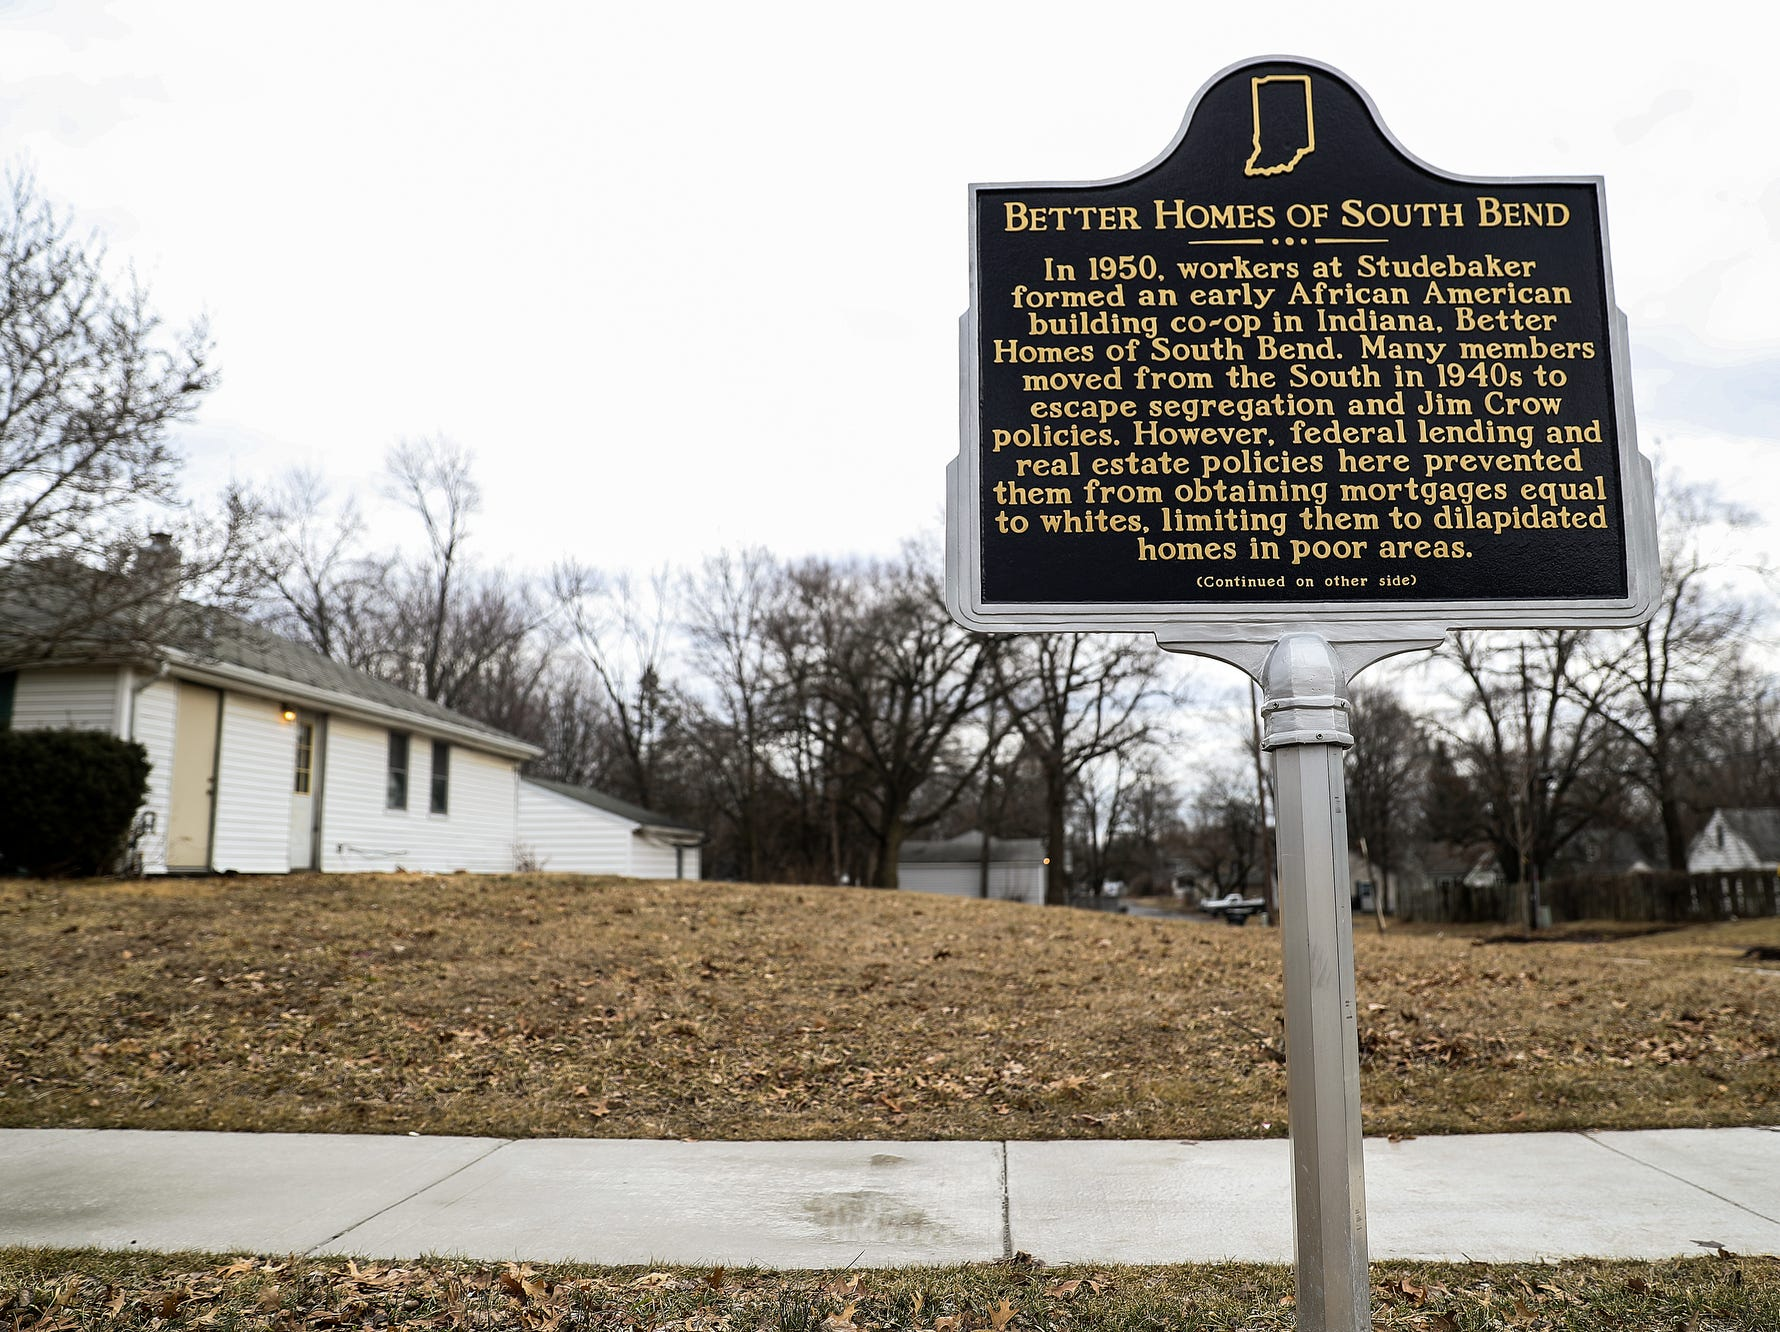 A historic marker on an empty lot recognizes Better Homes of South Bend, the first neighborhood built for African-Americans on the northwest side of South Bend, Ind. seen on Wednesday, March 13, 2019. One of the first homes stood in the empty lot but was sold in the 90s, eventually falling to disrepair, and was taken down as part of the city's initiative to demolish 1,000 vacant, abandoned or dilapidated houses in 1,000 days.